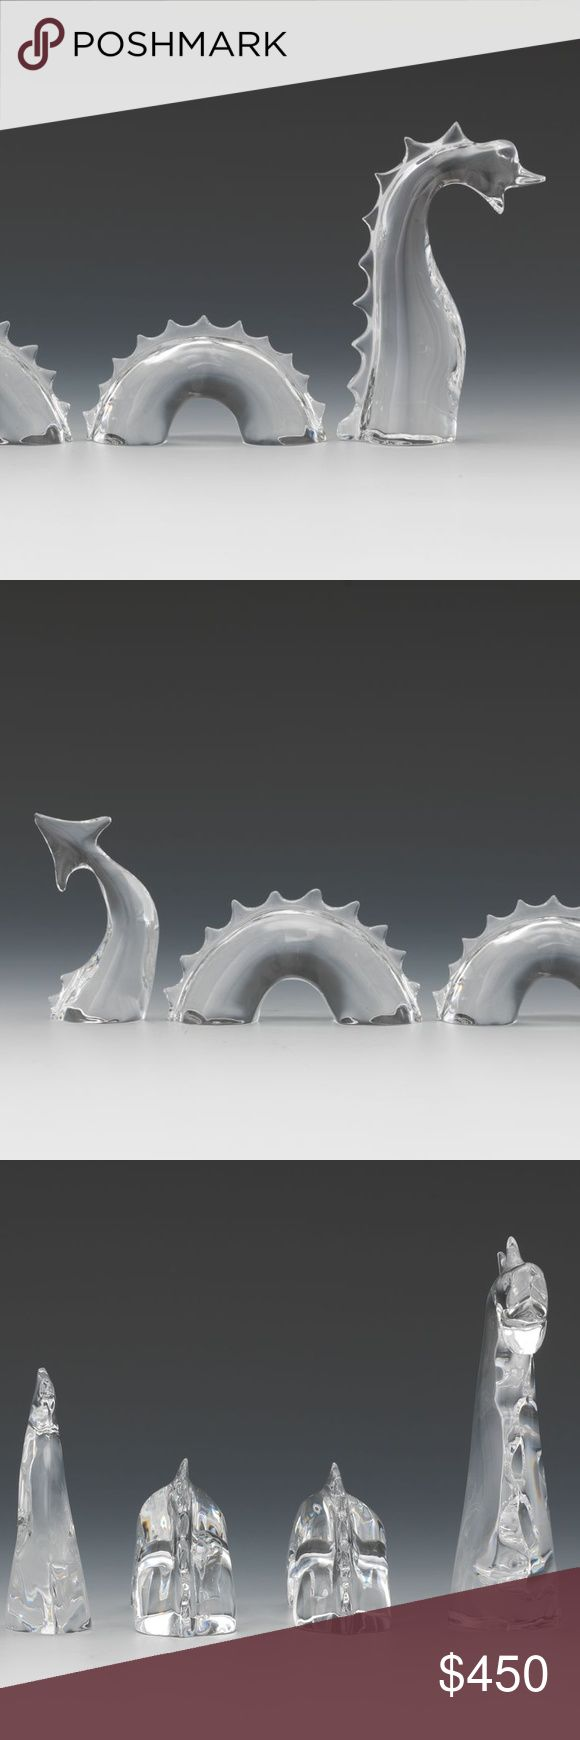 A Four Piece Baccarat Crystal Sea Monster A Four Piece Baccarat Crystal Sea Monster  The head and neck, 3 ¾ x 2 in Two curved body pieces, 1 ⅜ x 3 ¼ in  The tail 2 ½ x 1 ½ in  Perfect Condition, we don't have original box. There are no chips, no cracks, no breaks, no repairs, no flakes. Please examine all our pictures as a part of description.  Fabulous addition to your Collection! Baccarat Other